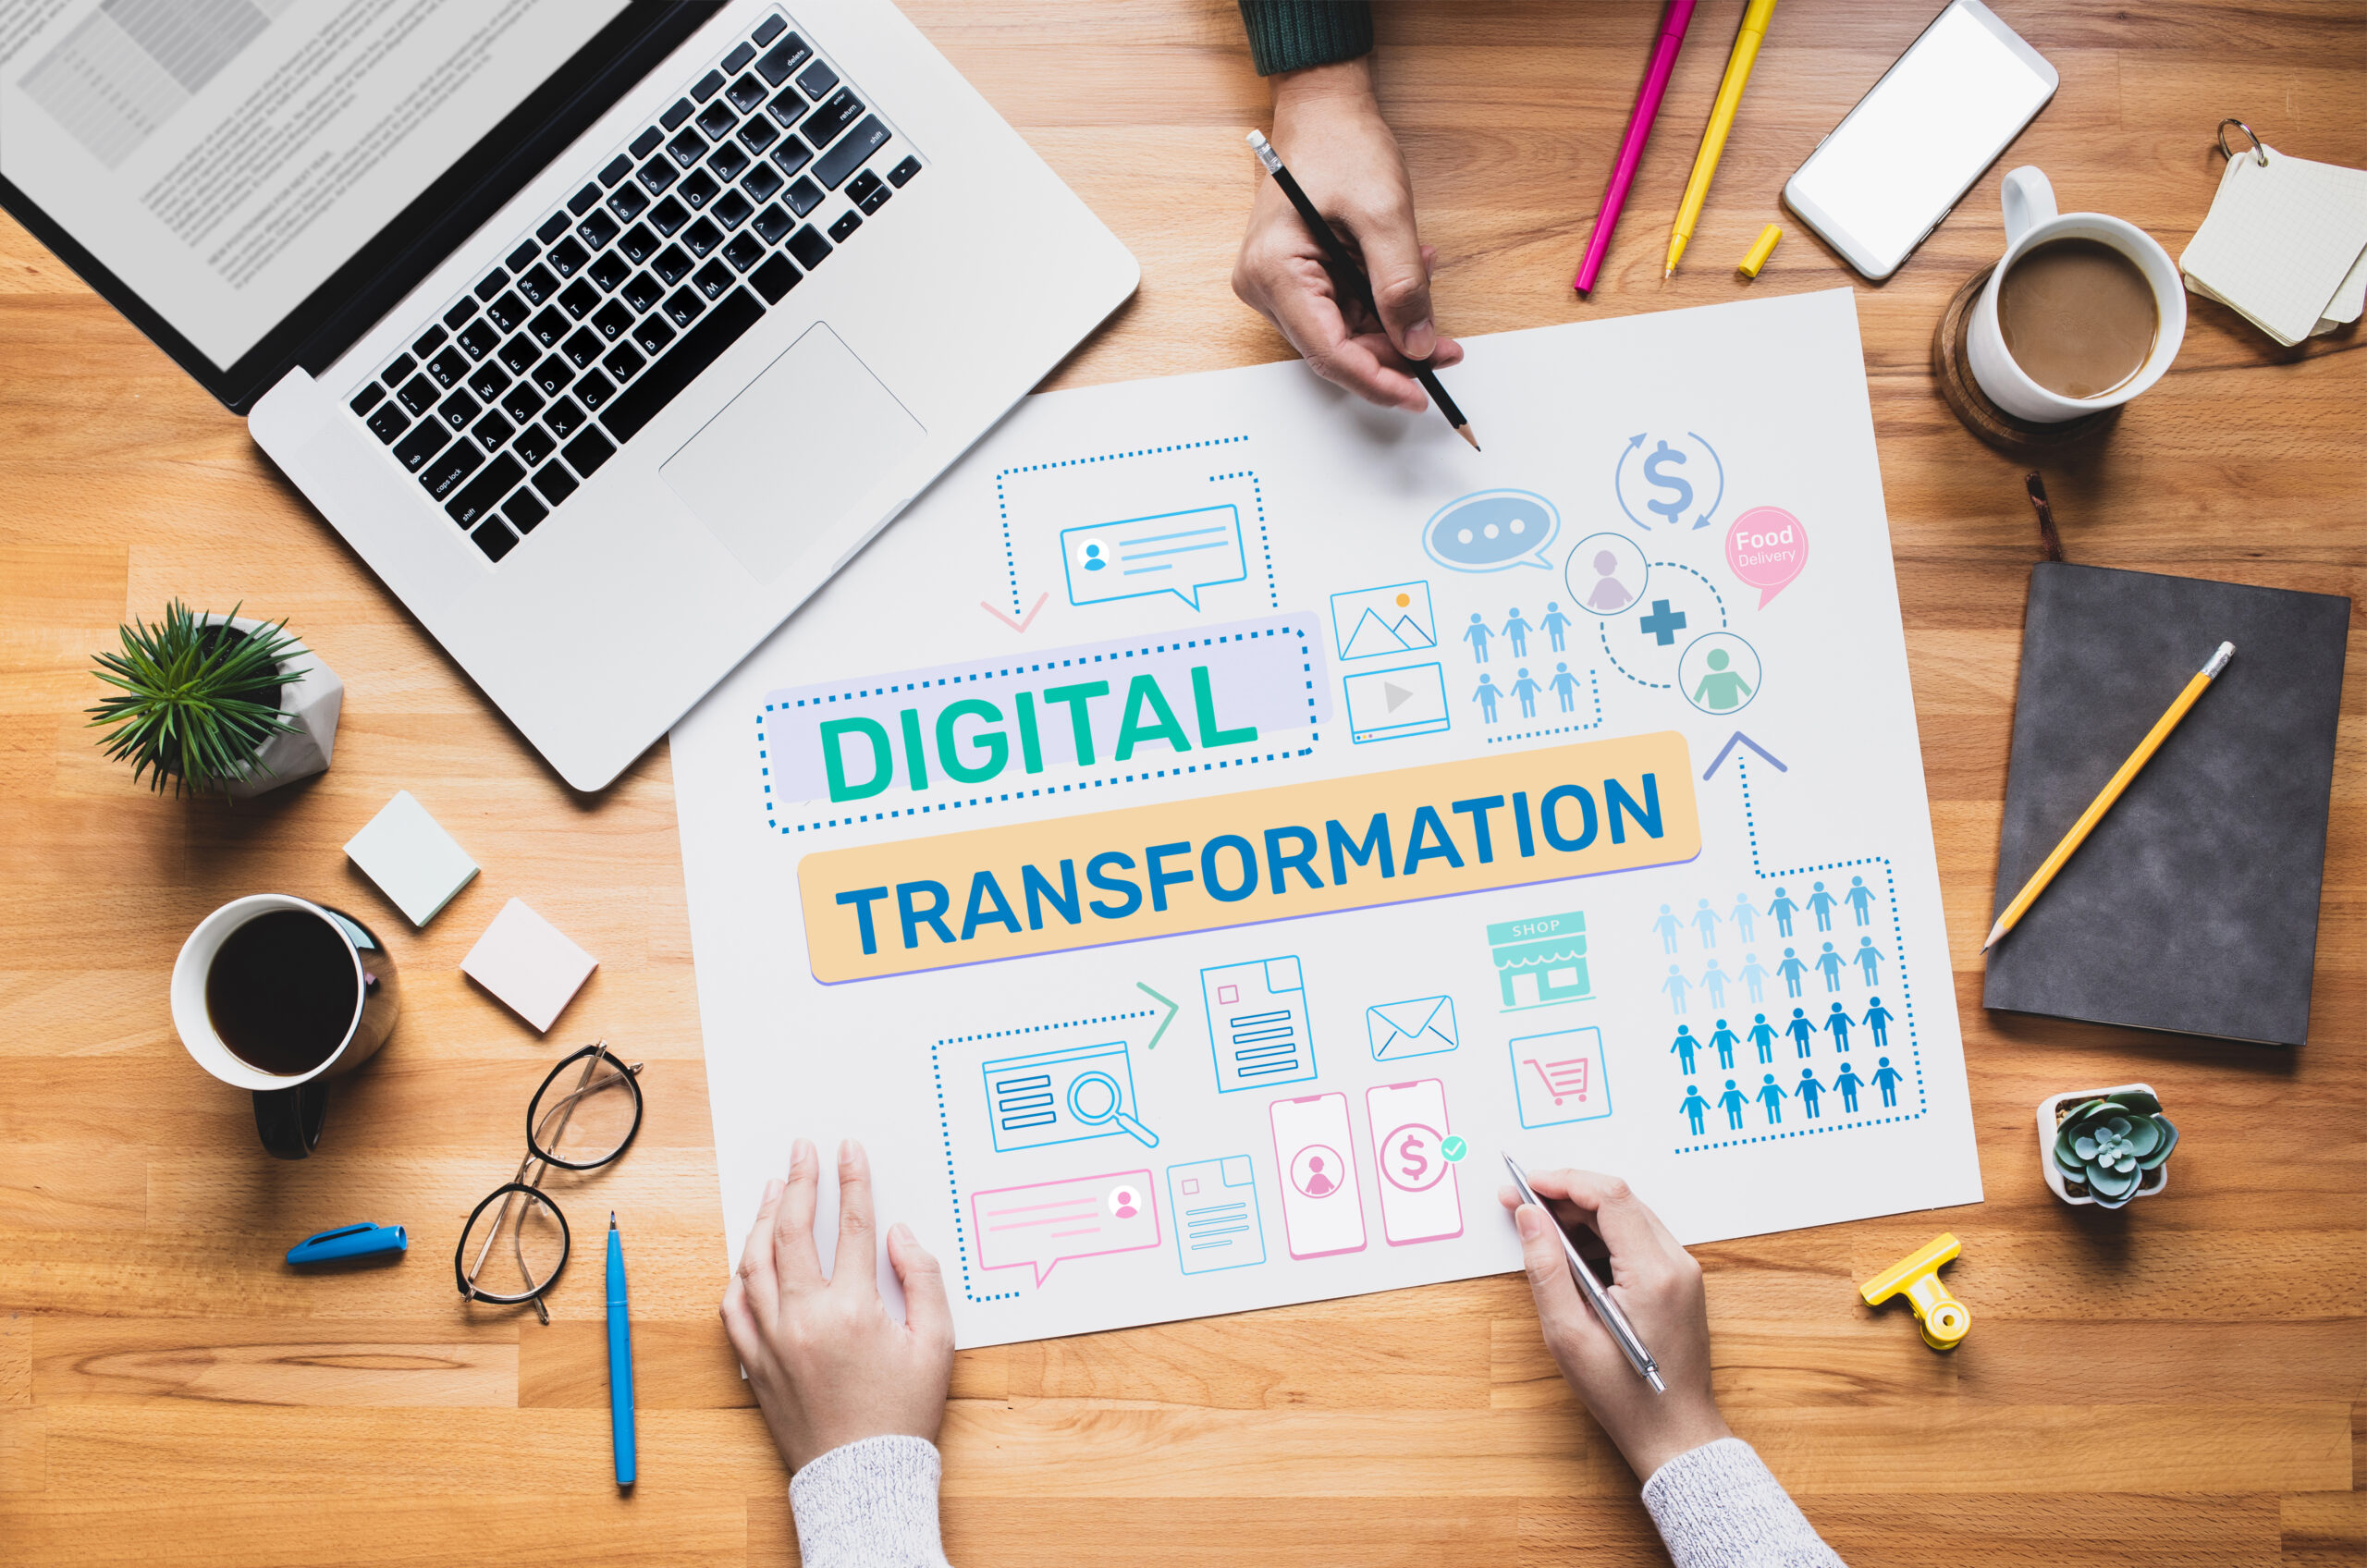 How Digital Transformation Can Help In The Labour Crisis